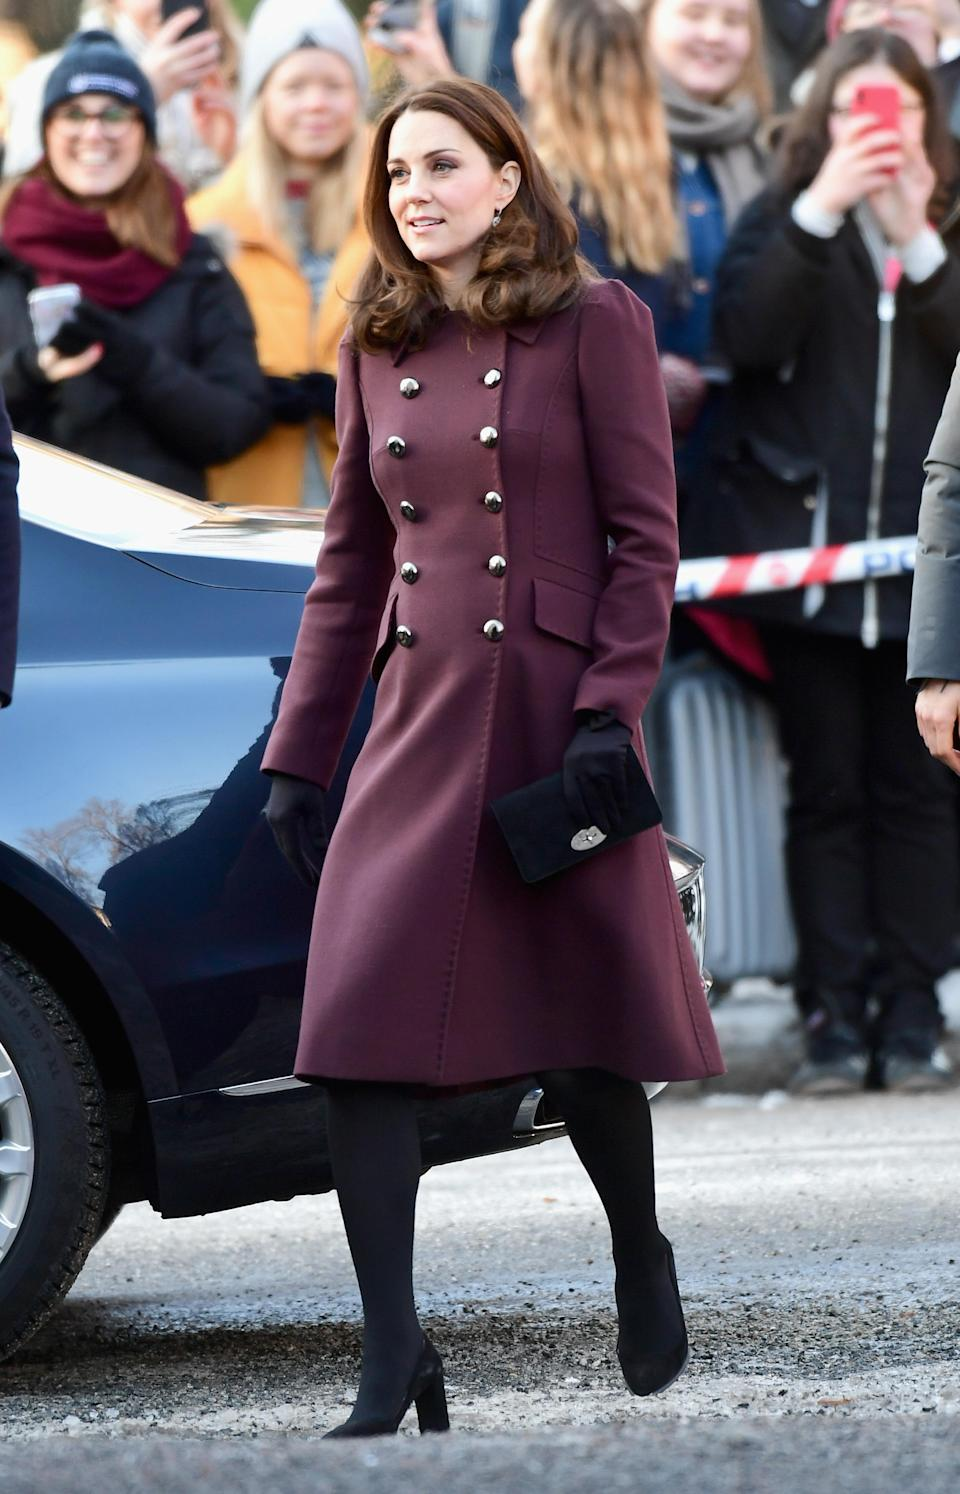 <p><strong>The occassion:</strong> A visit to Hartvig Nissen School in Oslo on day four of the Duke and Duchess's Royal Tour to Sweden and Norway.<br><strong>The look:</strong> A burgundy double-breasted Dolce & Gabbana coat with black tights and heels. <br>[Photo: Getty] </p>